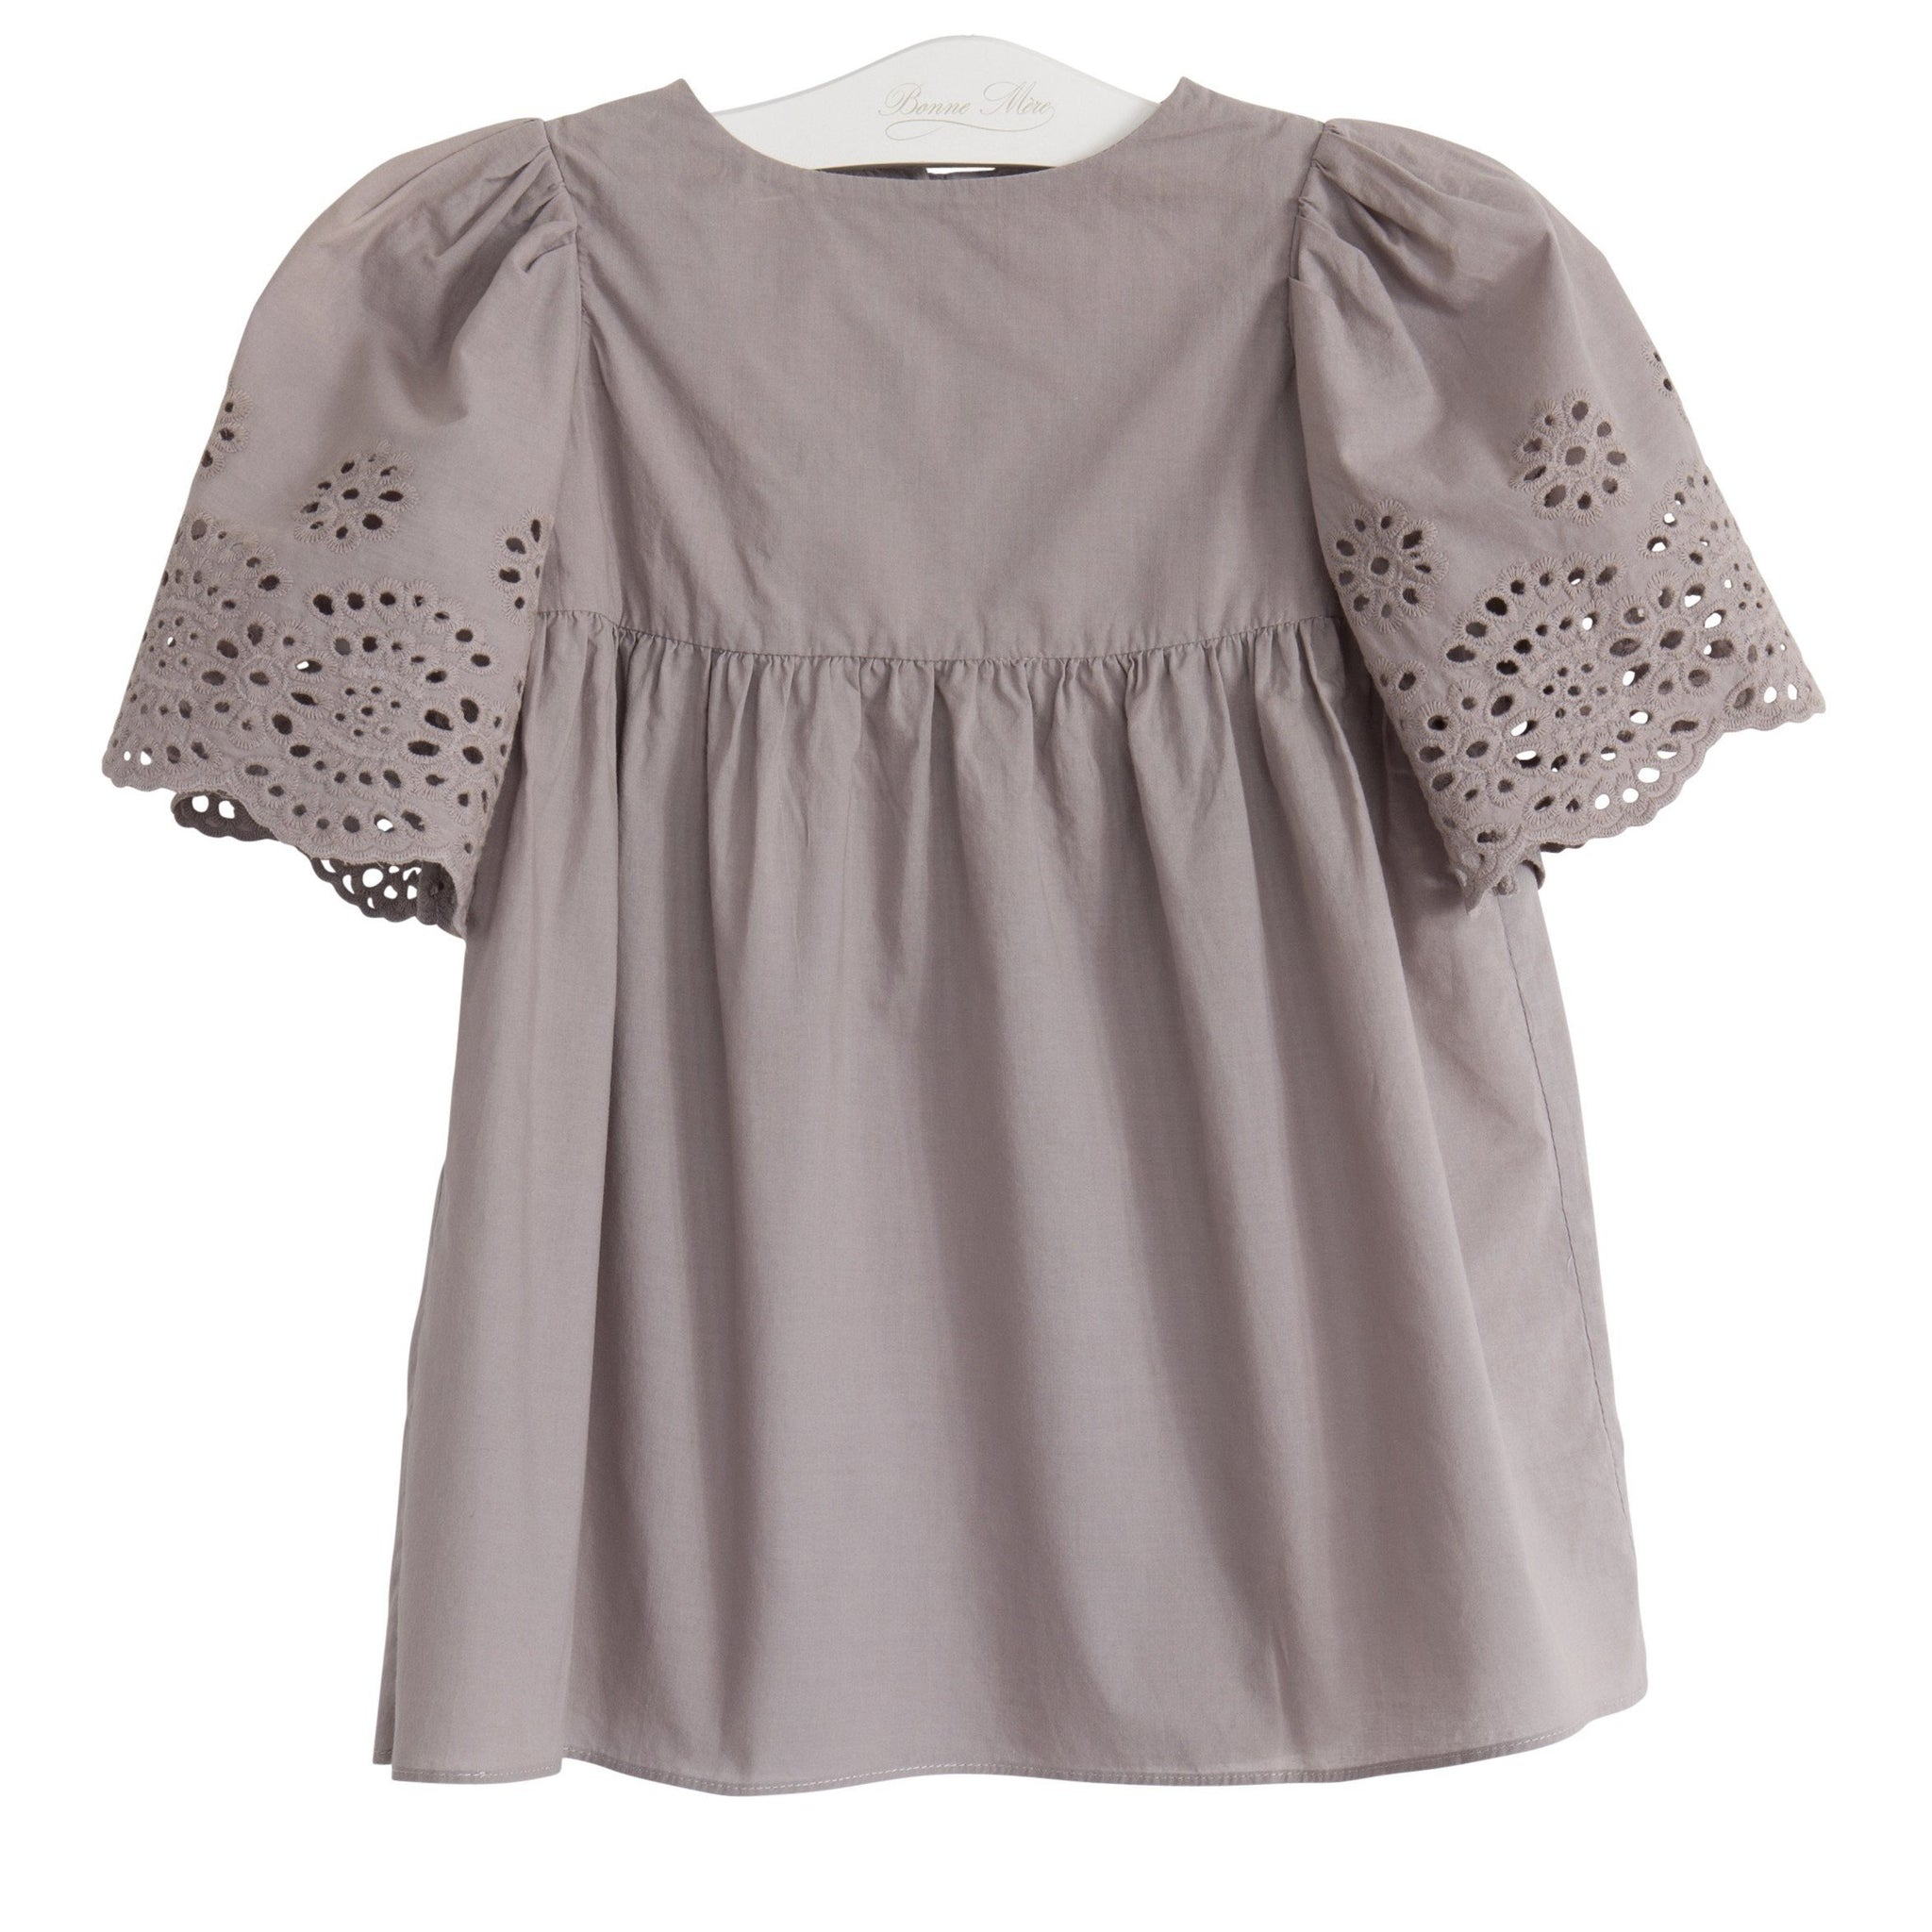 51b79a222b2 Eyelet Daisy Dress- Elephant grey